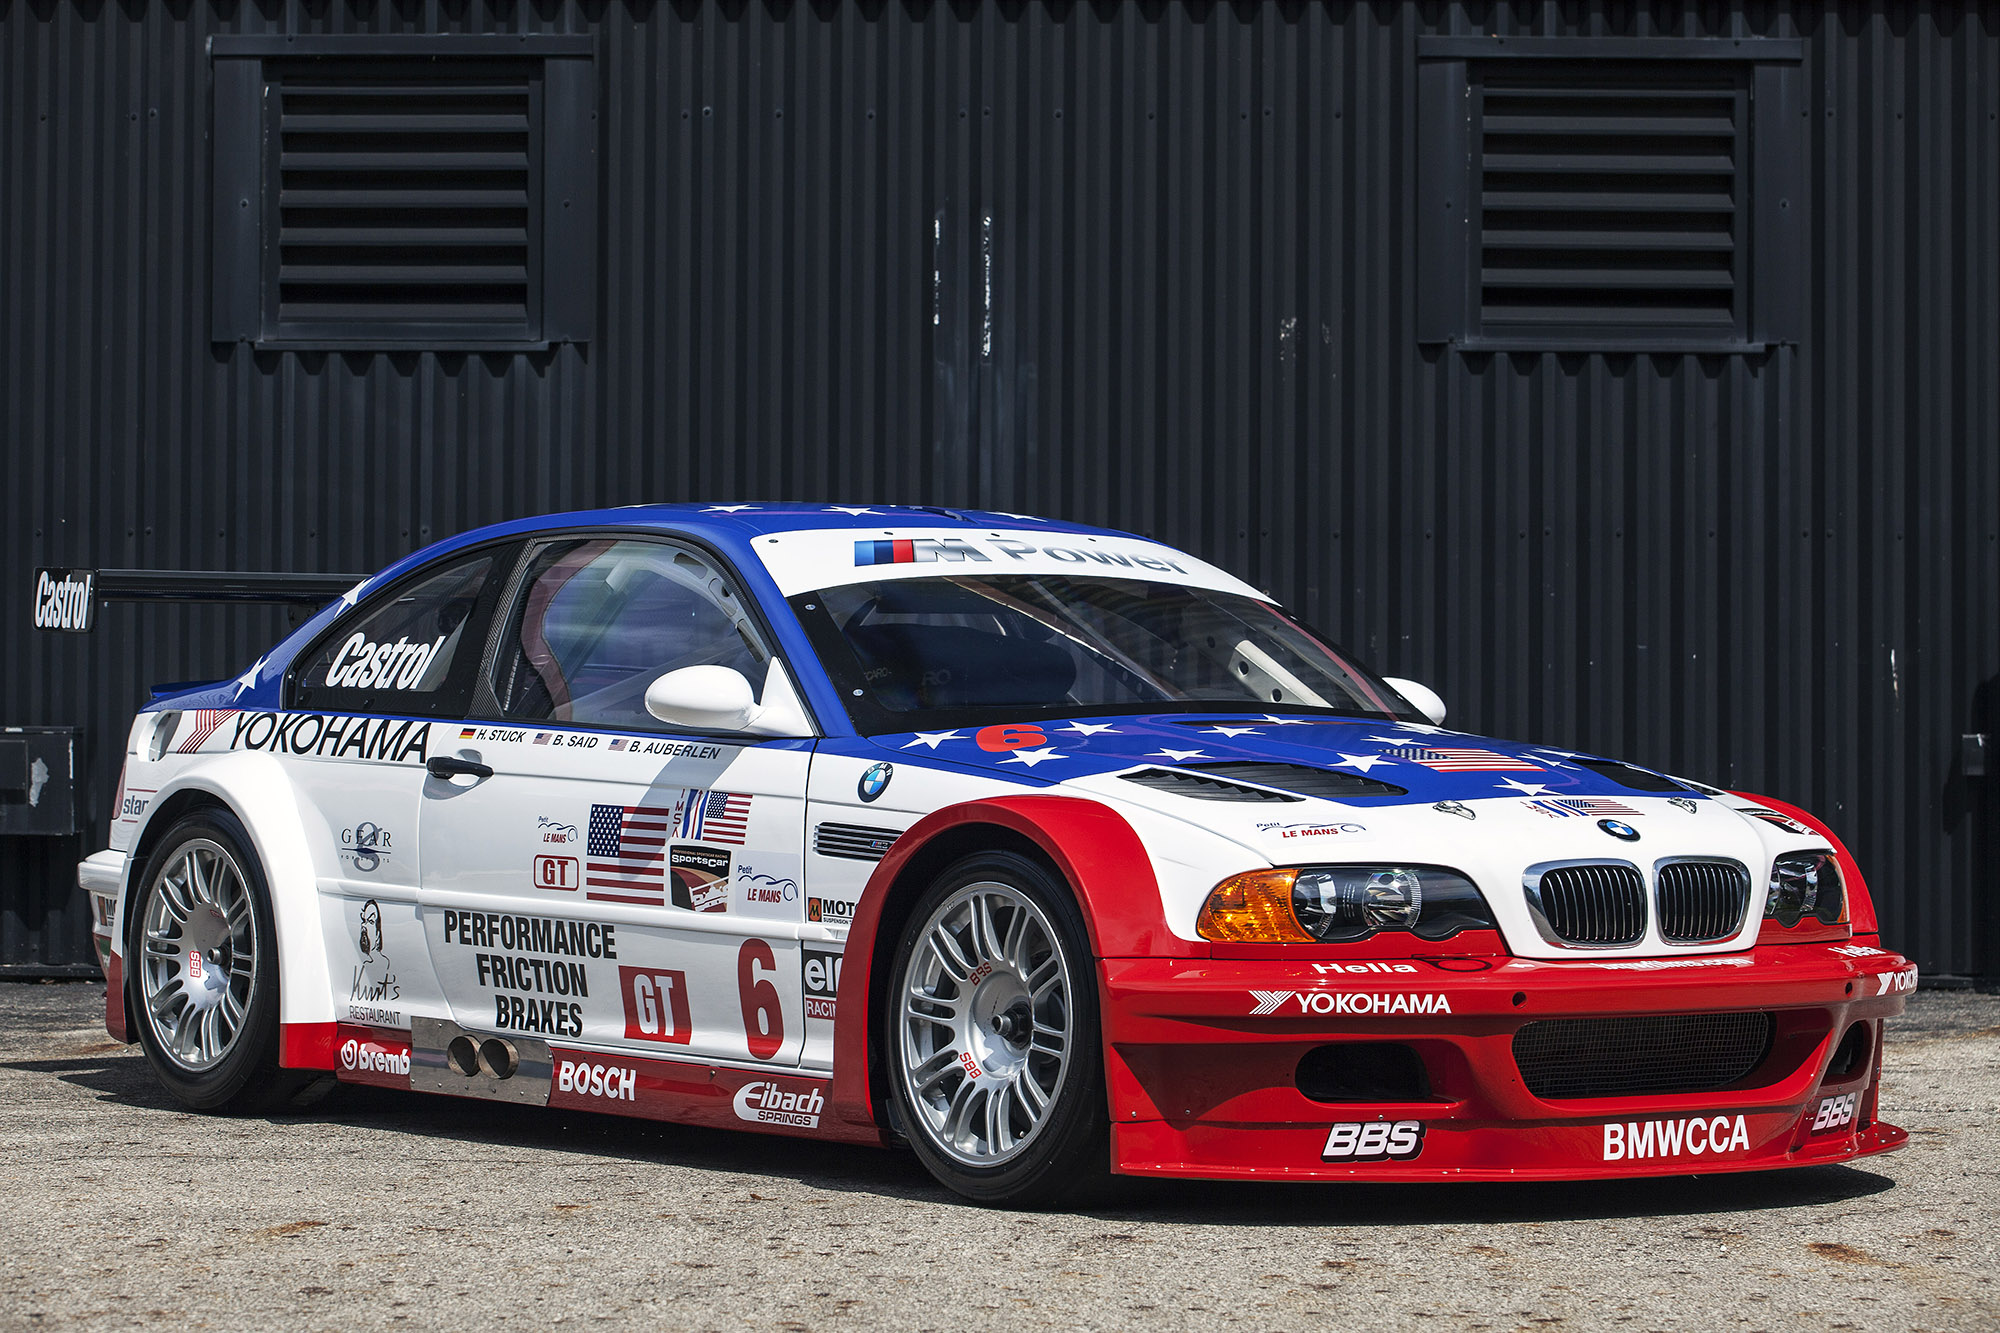 Bmw Brings Controversial M3 Gtr Out For Monterey Car Week